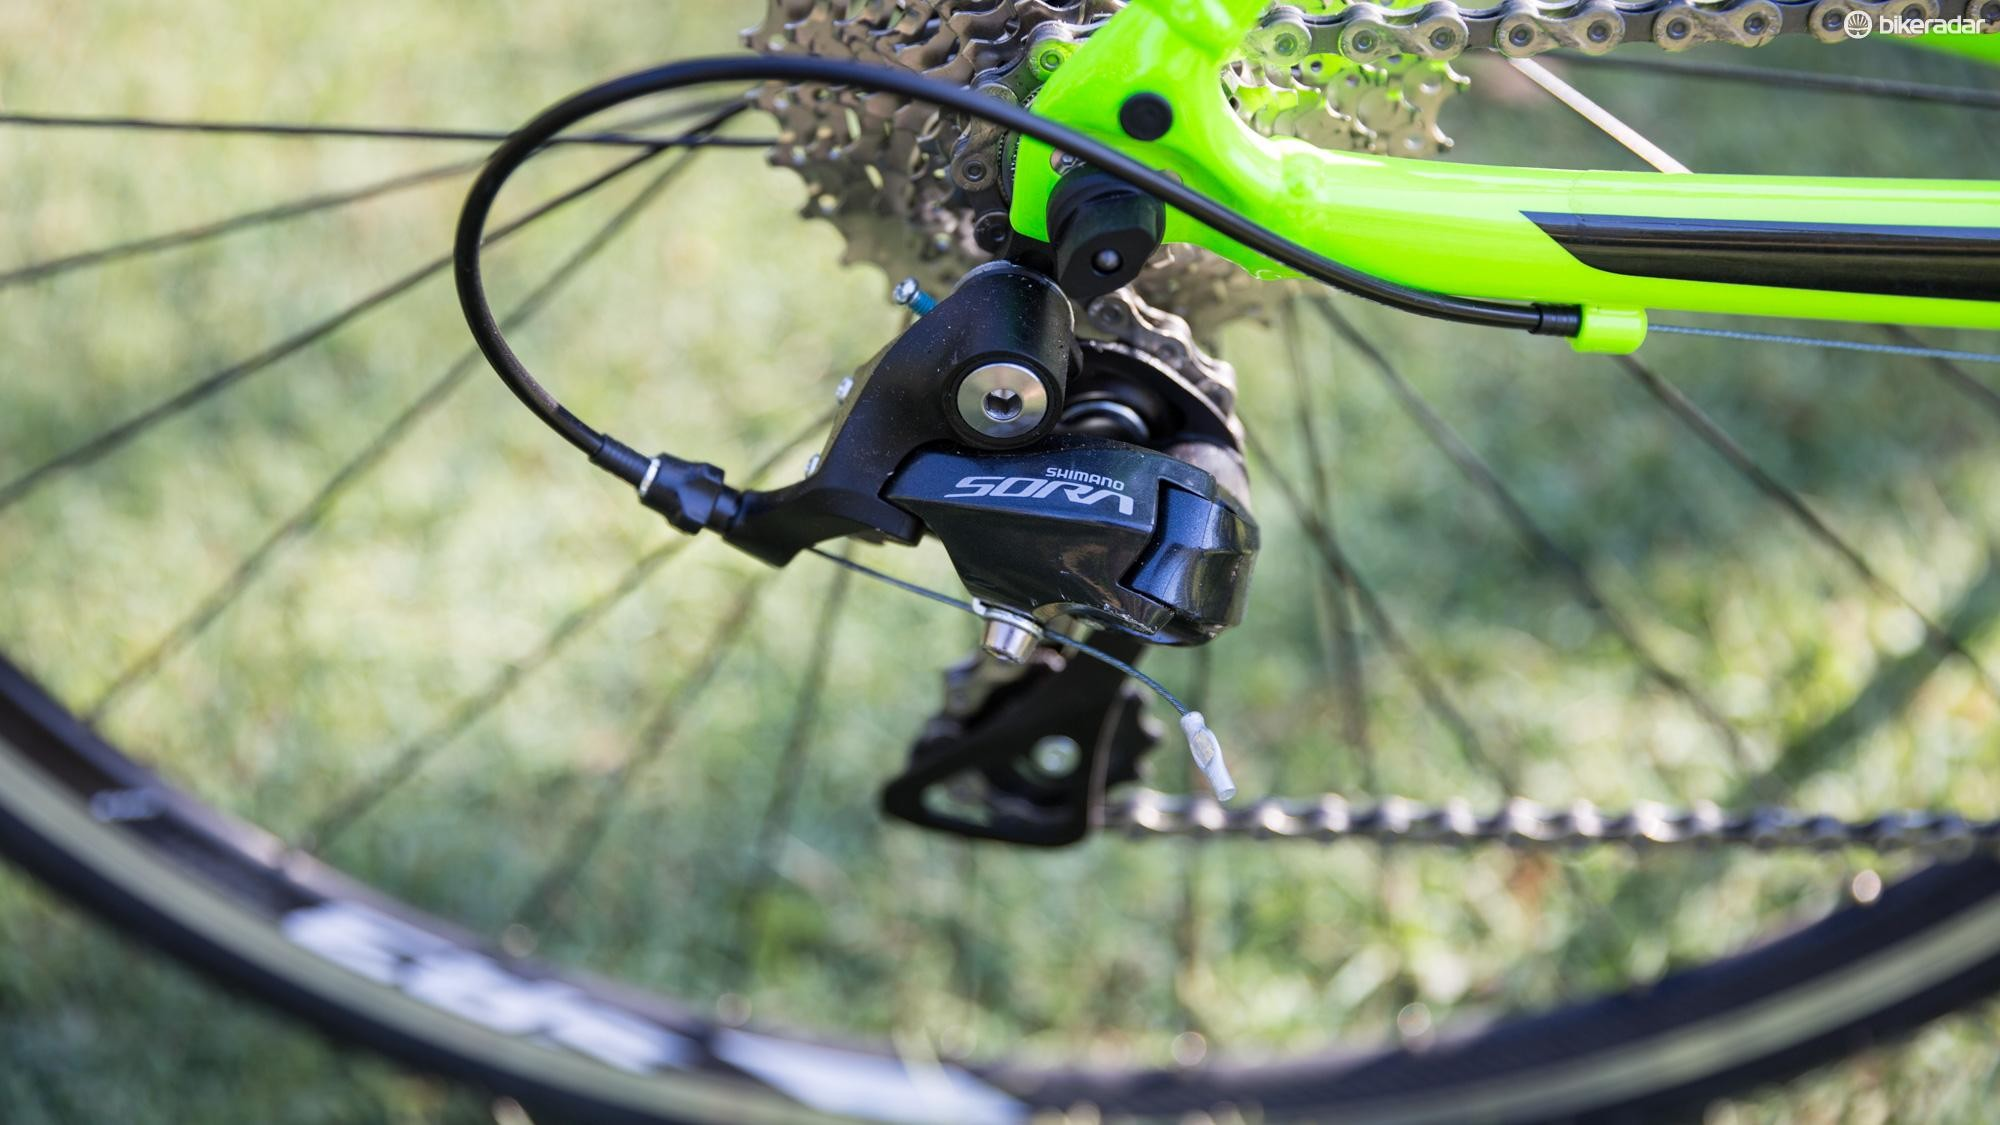 There's a Sora derailleur at the back